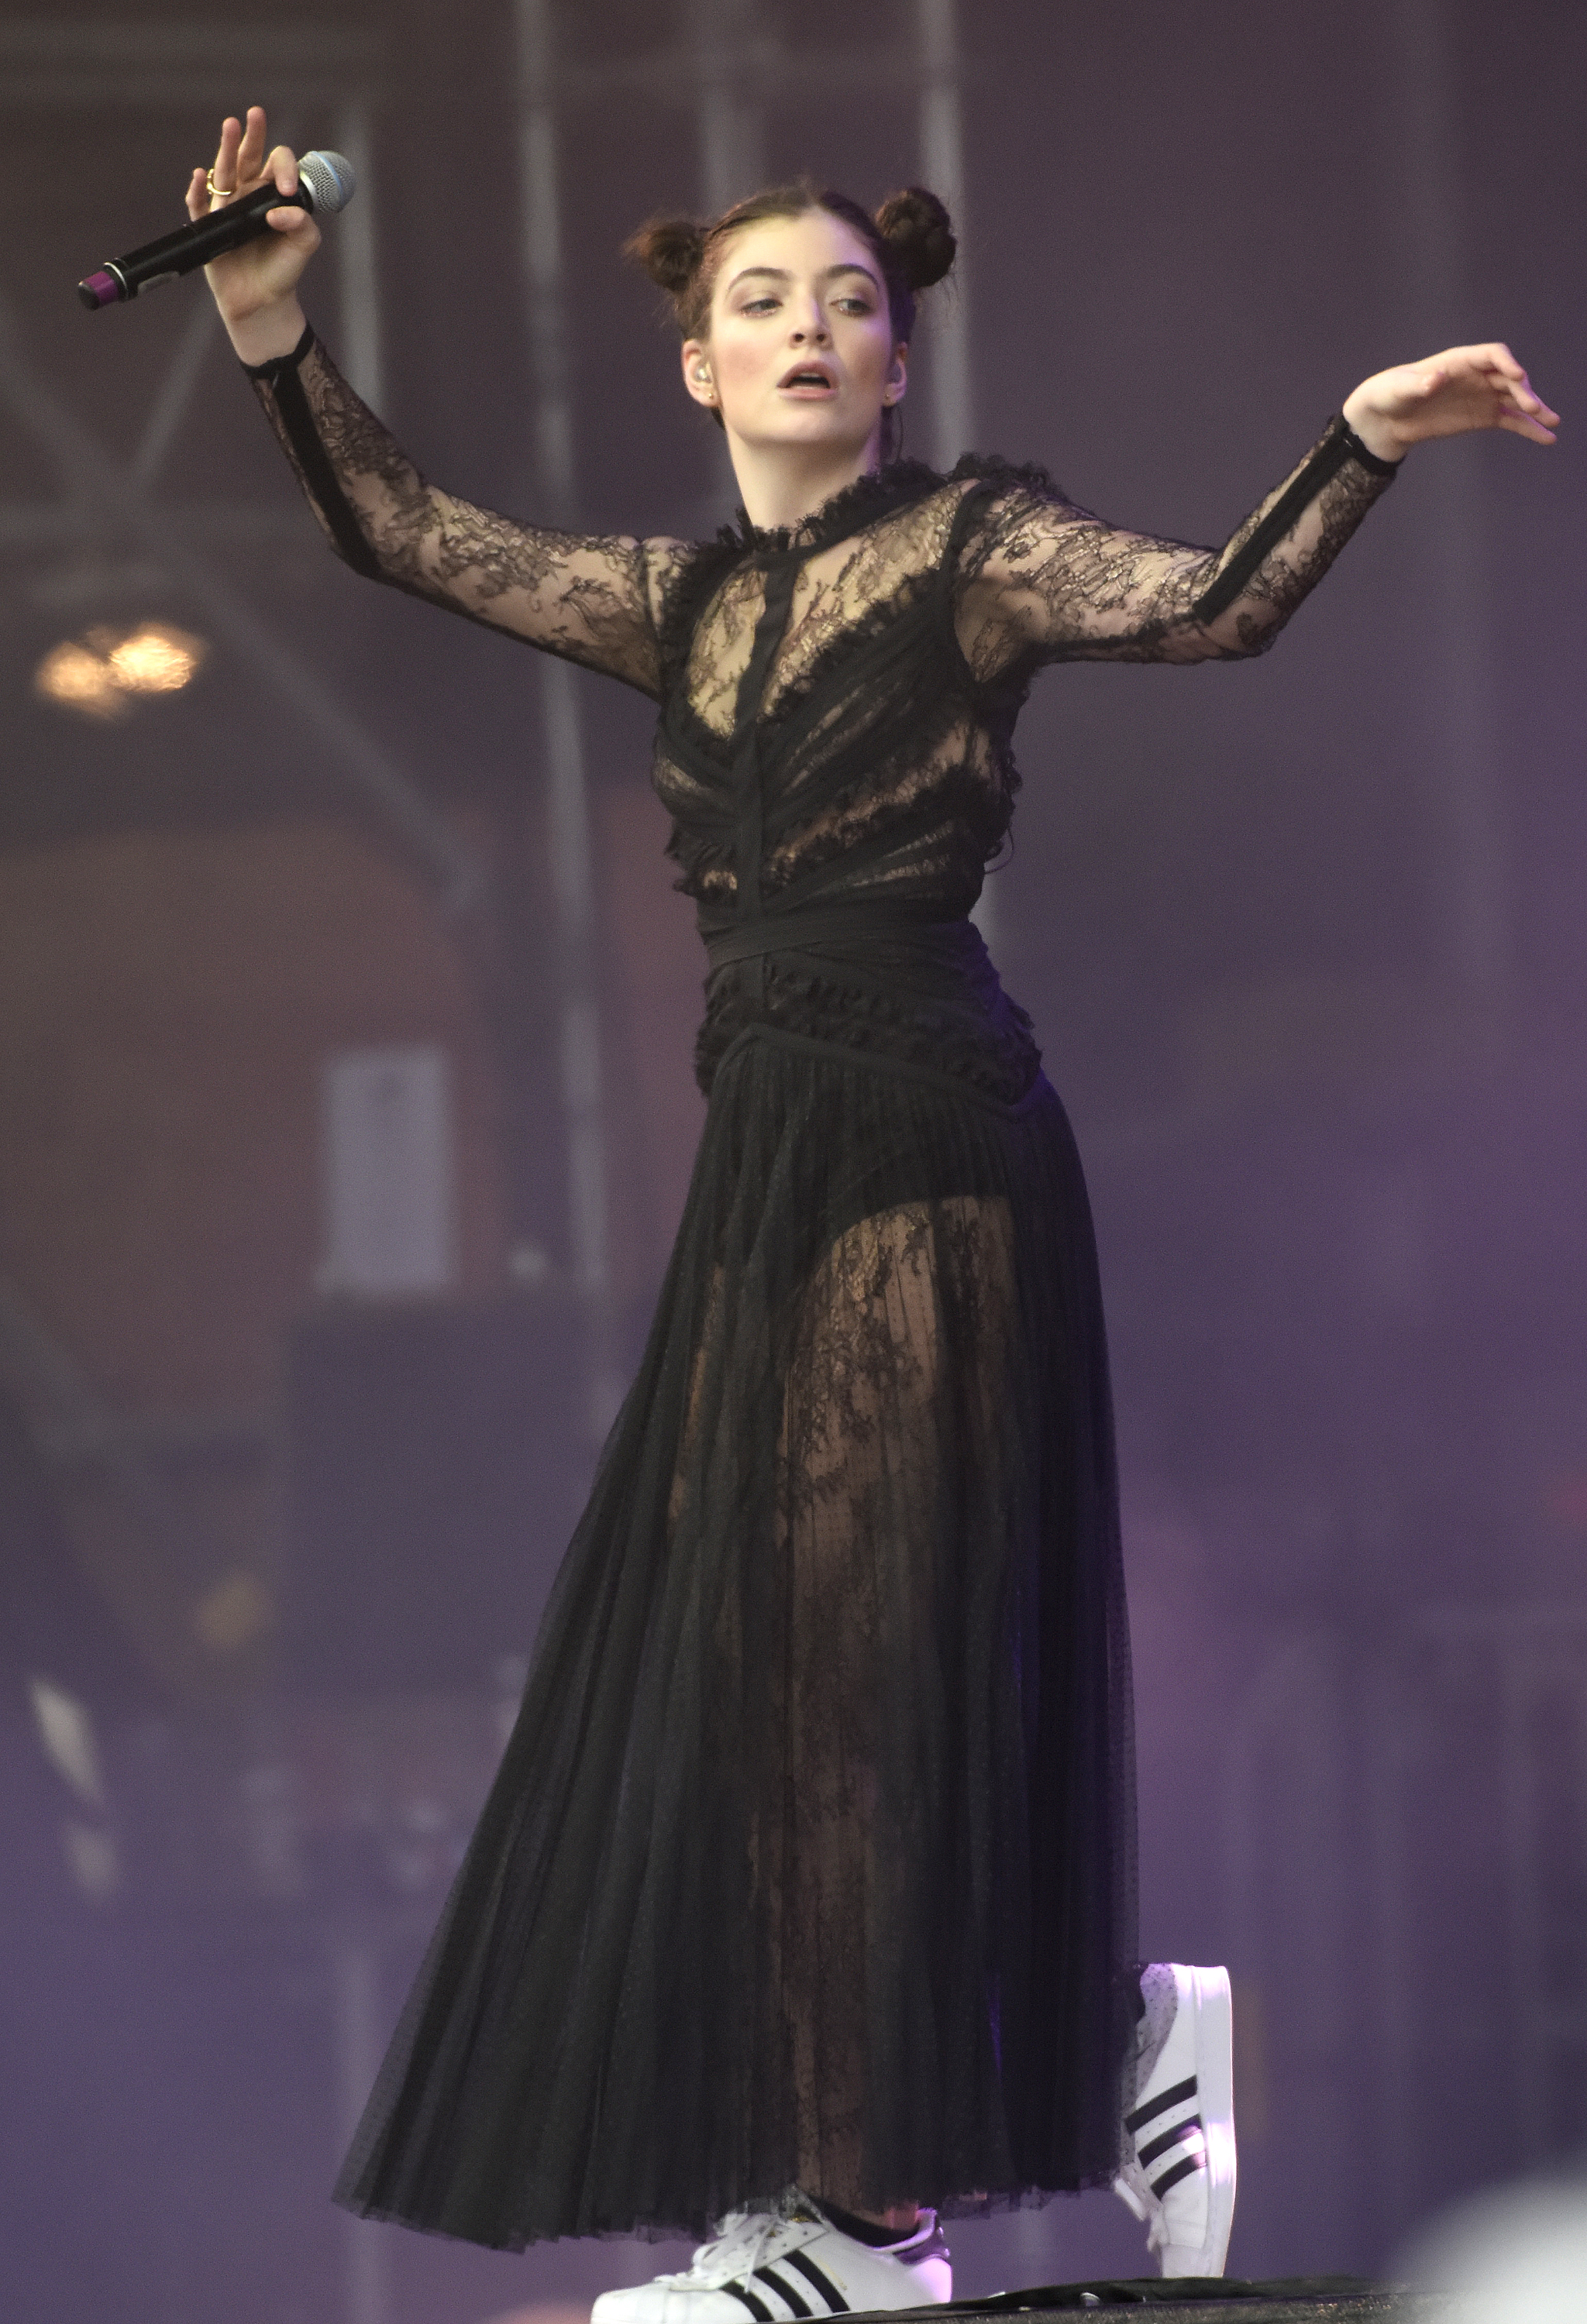 """<p>New Zealand singer <a href=""""https://style.nine.com.au/2017/08/07/11/30/lorde-handsmaids-tale-trend"""" target=""""_blank"""">Lorde </a>achieved international fame as a fashion underdog singing about <em>Royals</em> but recent appearances from this unique talent promoting her latest album <em>Melodrama</em> suggest a style shift.</p> <p>We have already clocked her <em><a href=""""https://style.nine.com.au/2017/08/07/11/30/lorde-handsmaids-tale-trend"""" target=""""_blank"""">Handmaid's Tale</a></em> cloak from New York label Vaquera plus Jacquemus and Zandra Rhodes' ensembles in the video for Perfect Places but at San Francisco's Outside Lands Festival Lorde took another aesthetic leap forward.</p> <p>The black lace dress from Elie Saab that Lorde performed in touched on her Gothic roots but was another clear signal that she's exploring her glamorous side.</p> <p>While the singer once made slouchy tracksuits and athletic tops her signature look, star stylist Karla Welch, who works with Justin Bieber, Katy Perry, Karlie Kloss and <a href=""""http://style.nine.com.au/2017/01/10/09/58/ruth-negga-louis-vuitton-dress"""" target=""""_blank"""">Ruth Negga</a>, has given the intense 20-year-old an introduction to luxury labels.</p> <p>While it's exciting watch Lorde's style evolution, we still take some glee in seeing that she kept her Adidas sneakers on beneath the feminine dress.<br> <br> <br> </p>"""